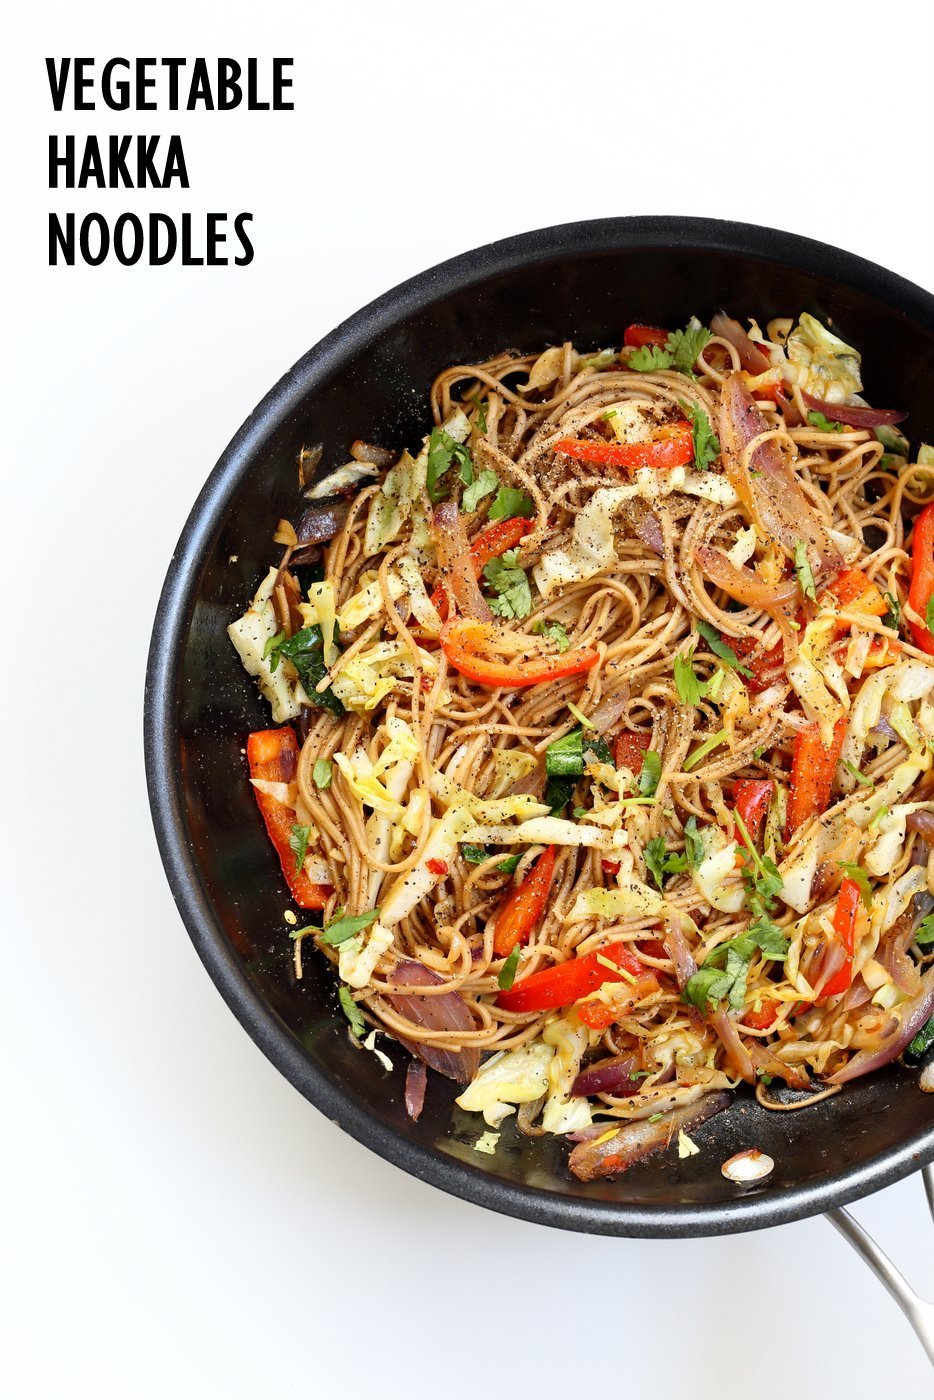 Vegetable hakka noodles 1 pot indo chinese noodles vegan richa easy 1 pot vegetable hakka noodles indo chinese hakka noodles with peppers onions forumfinder Choice Image